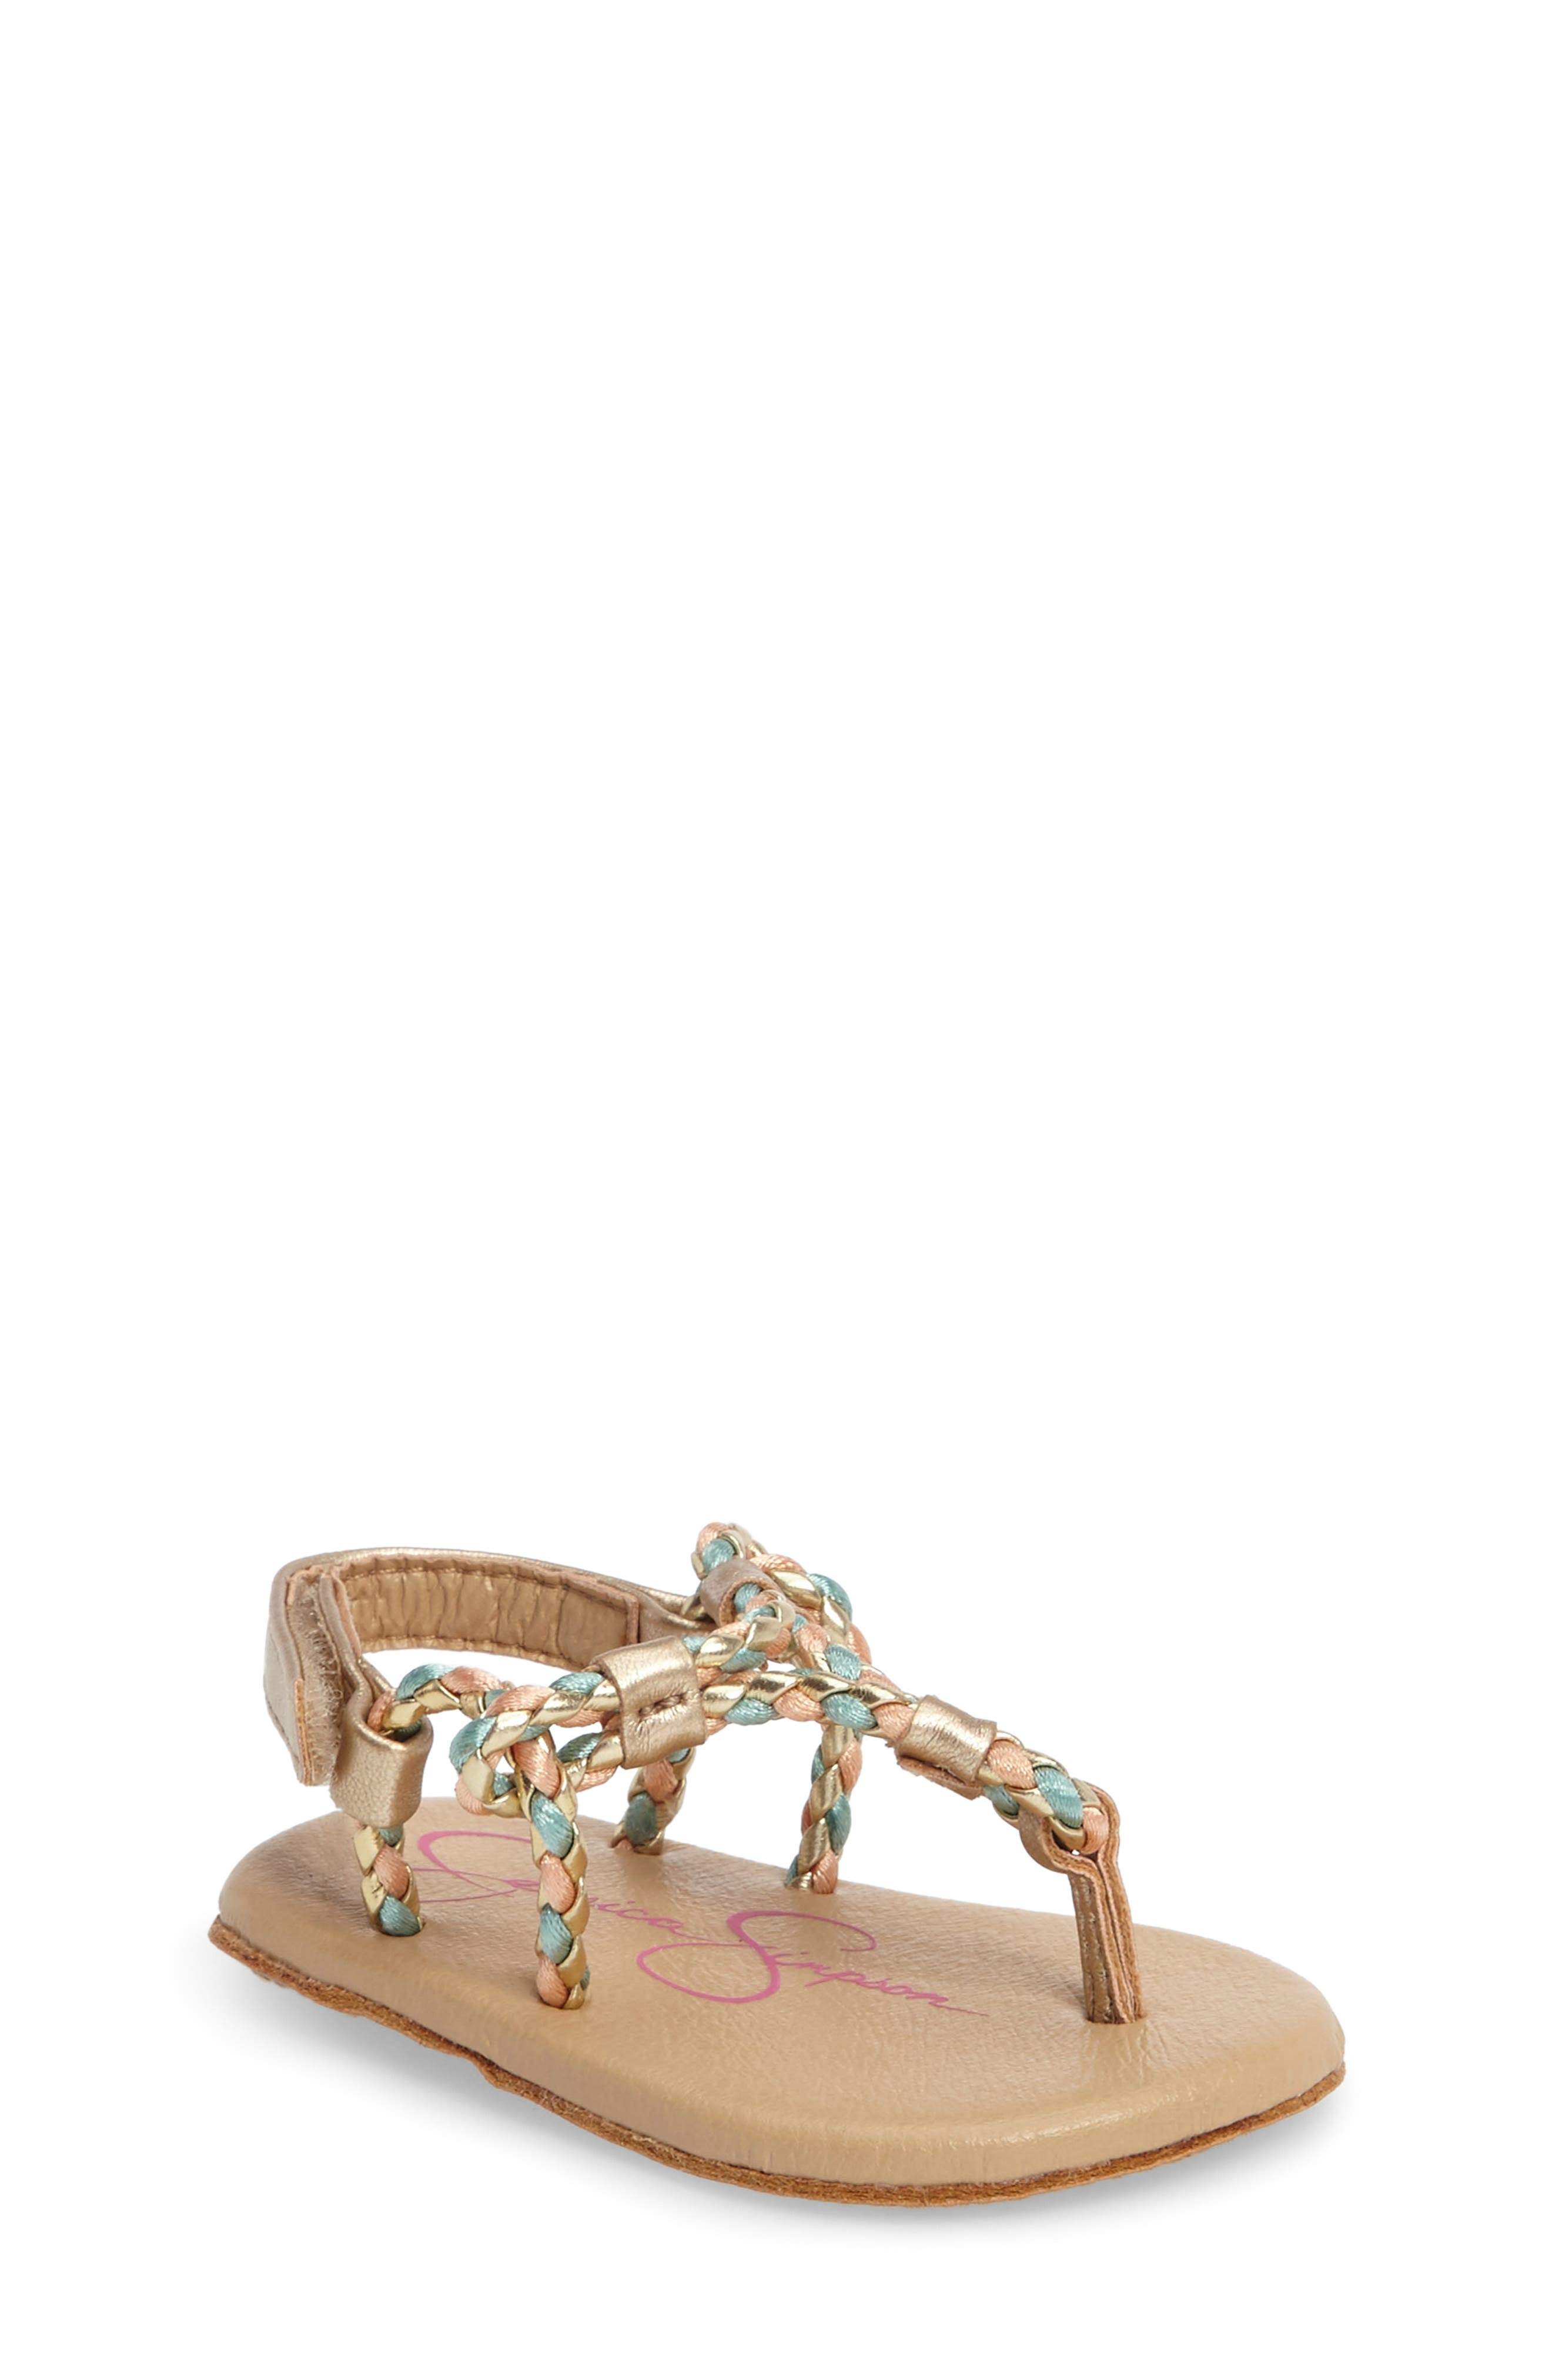 Swizzle Thong Sandal,                         Main,                         color, Gold Faux Leather